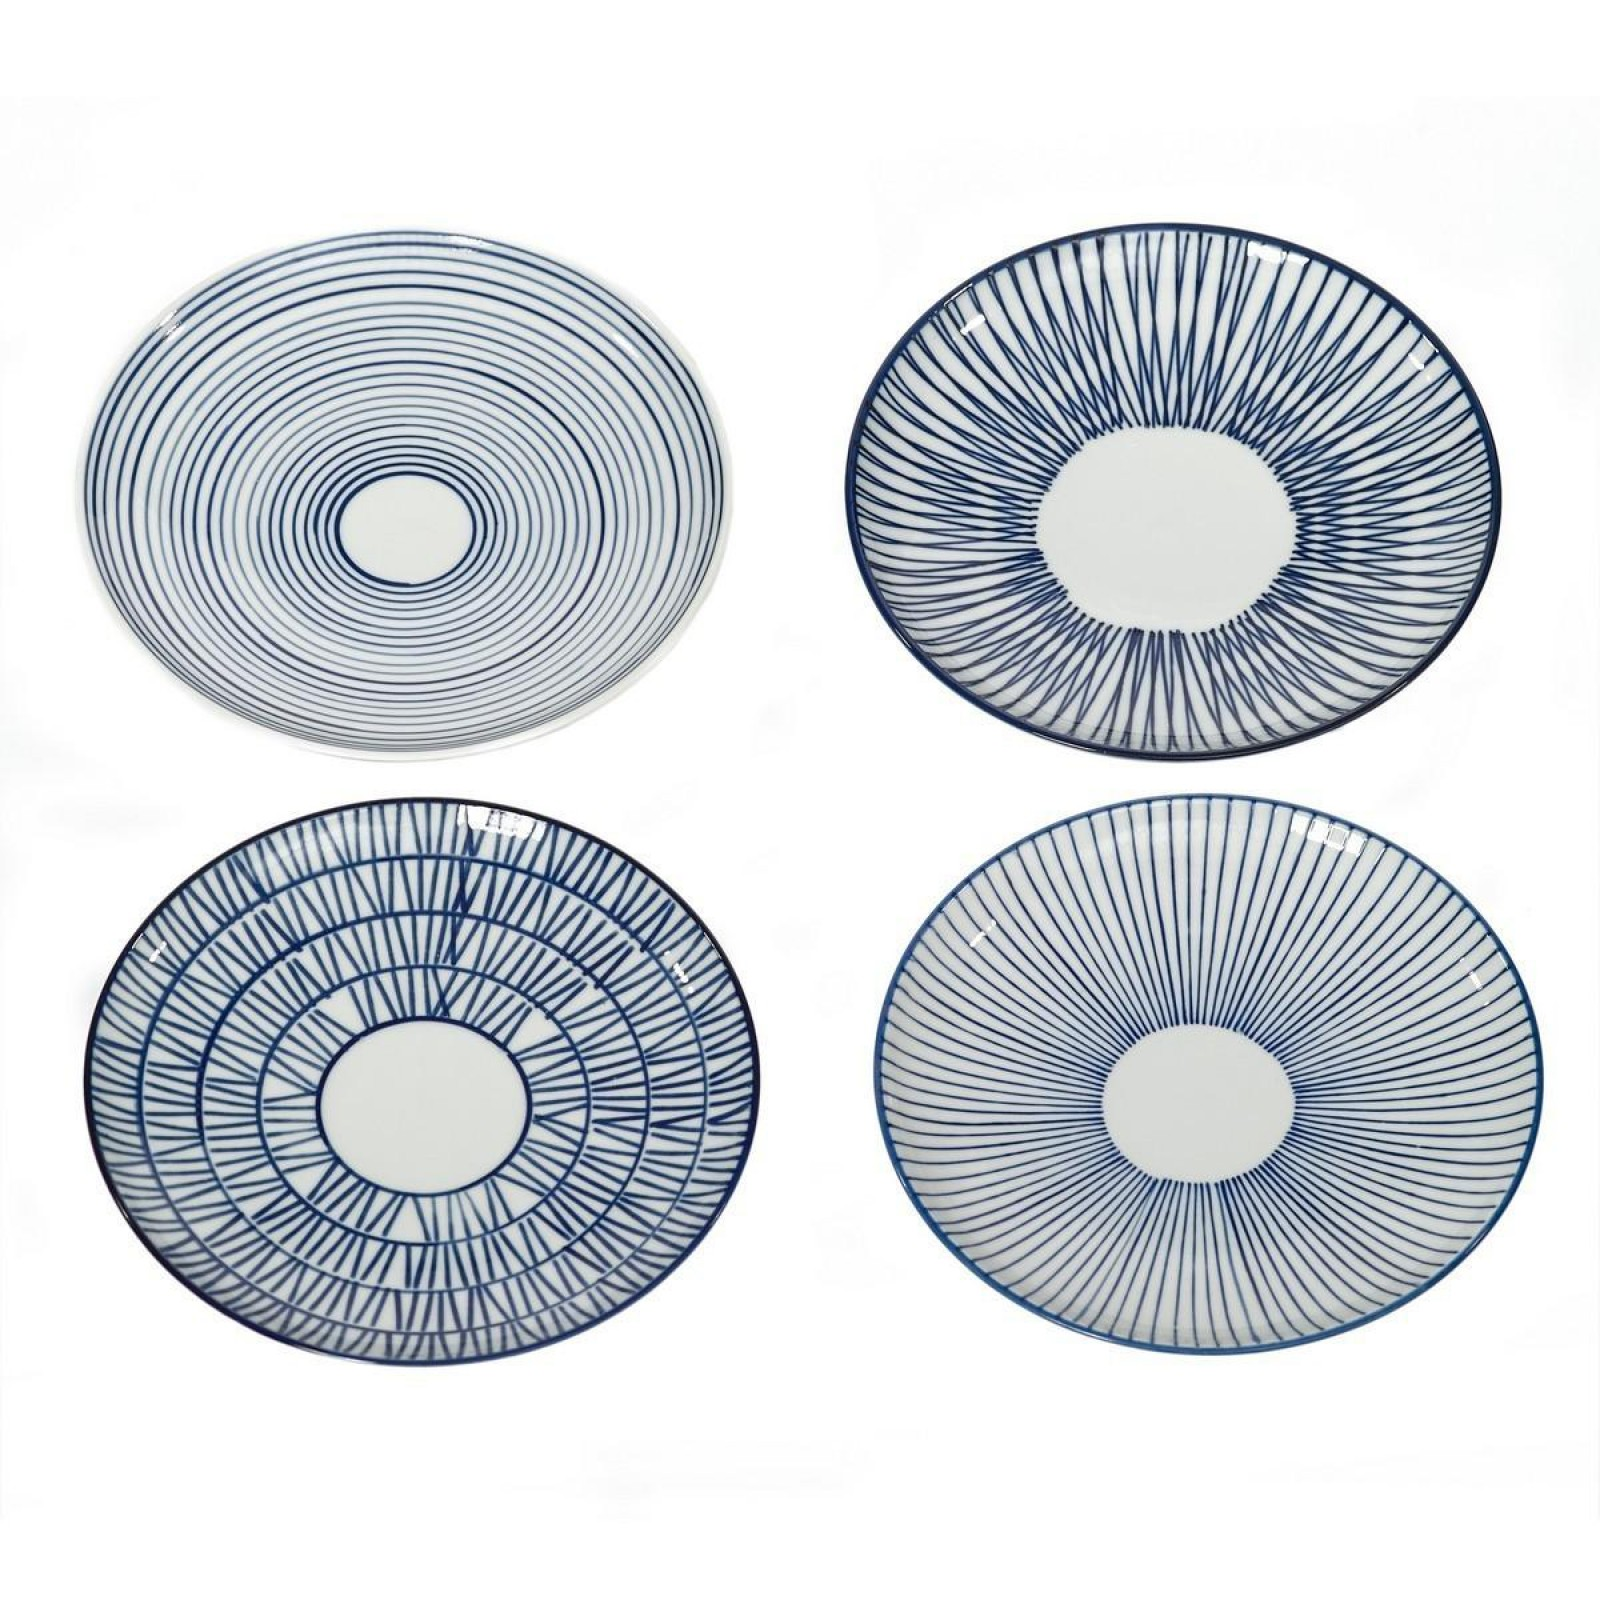 Stripes Vario Plate Set of 4 - pols potten